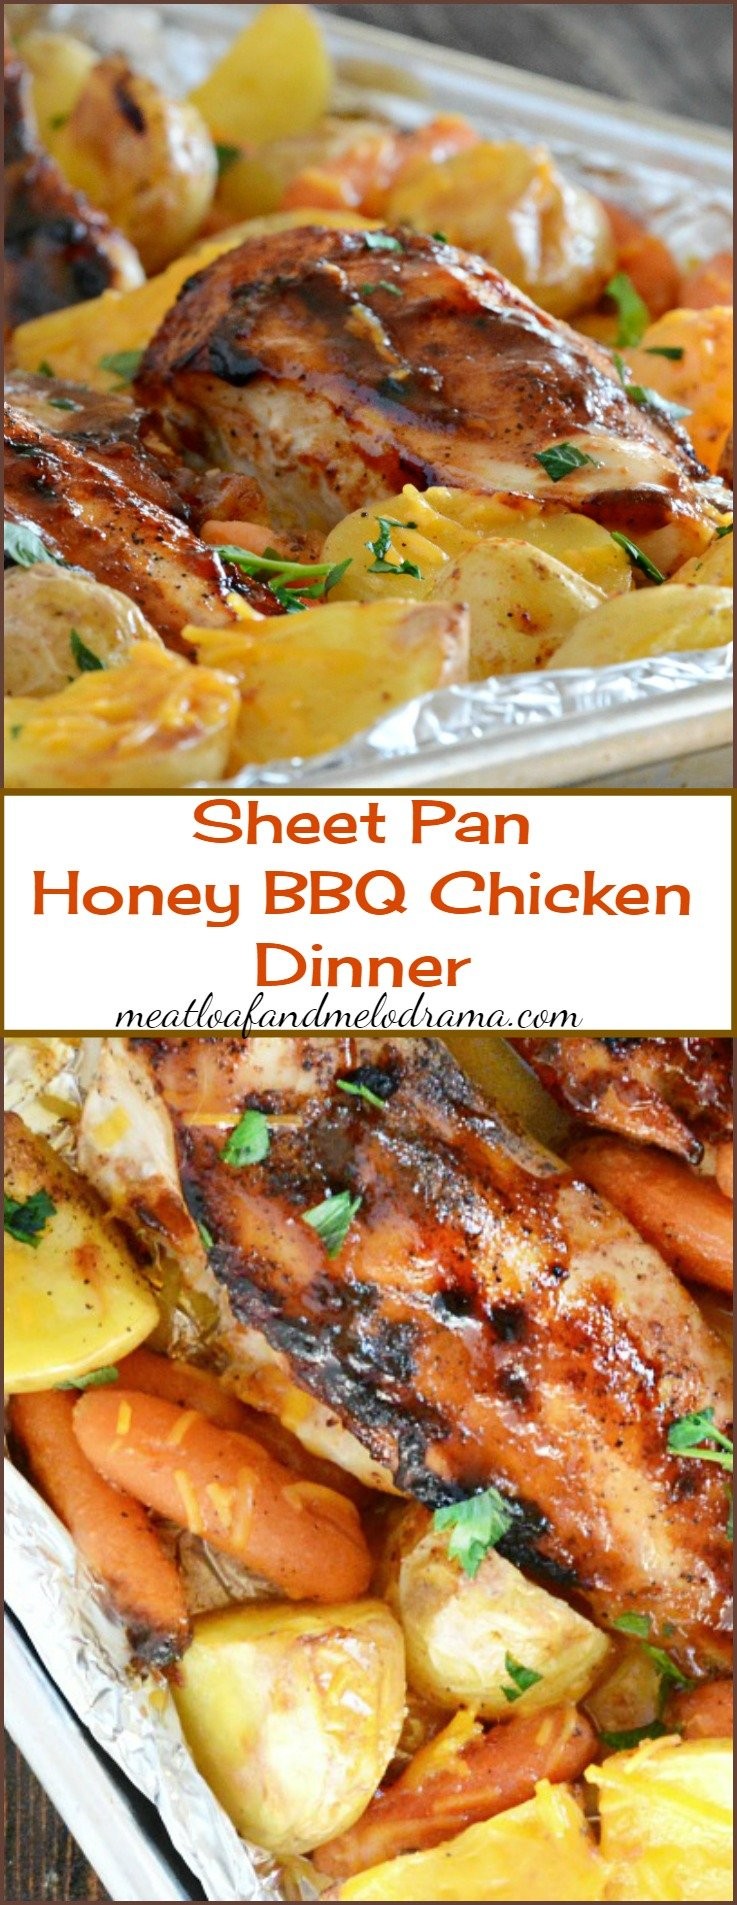 one-sheet-pan-honey-bbq-chicken-dinner